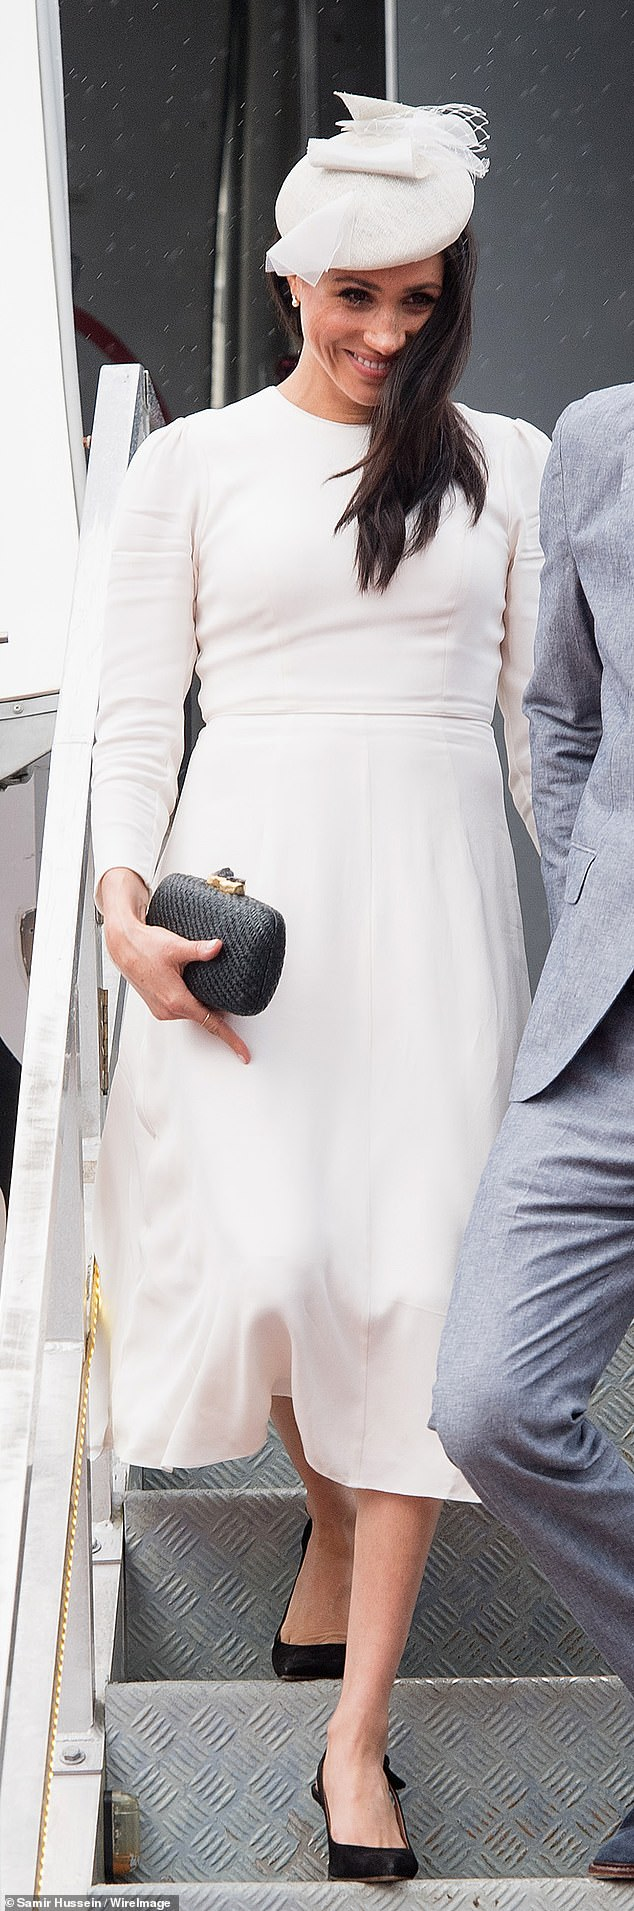 CLUTCHING ON TO TRADITIONAL TECHNIQUES; You can't pack much into one of Meghan's favourite handbags, but what does that matter when there's a global message within? Meghan carried this sleek £172 clutch from California-based brand Kayu to a society wedding in August 2018. Its bags — made from materials including straw, wood and shell — are handmade by all-women co-operatives in the Philippines, Indonesia and Malaysia, using indigenous techniques passed down through generations.